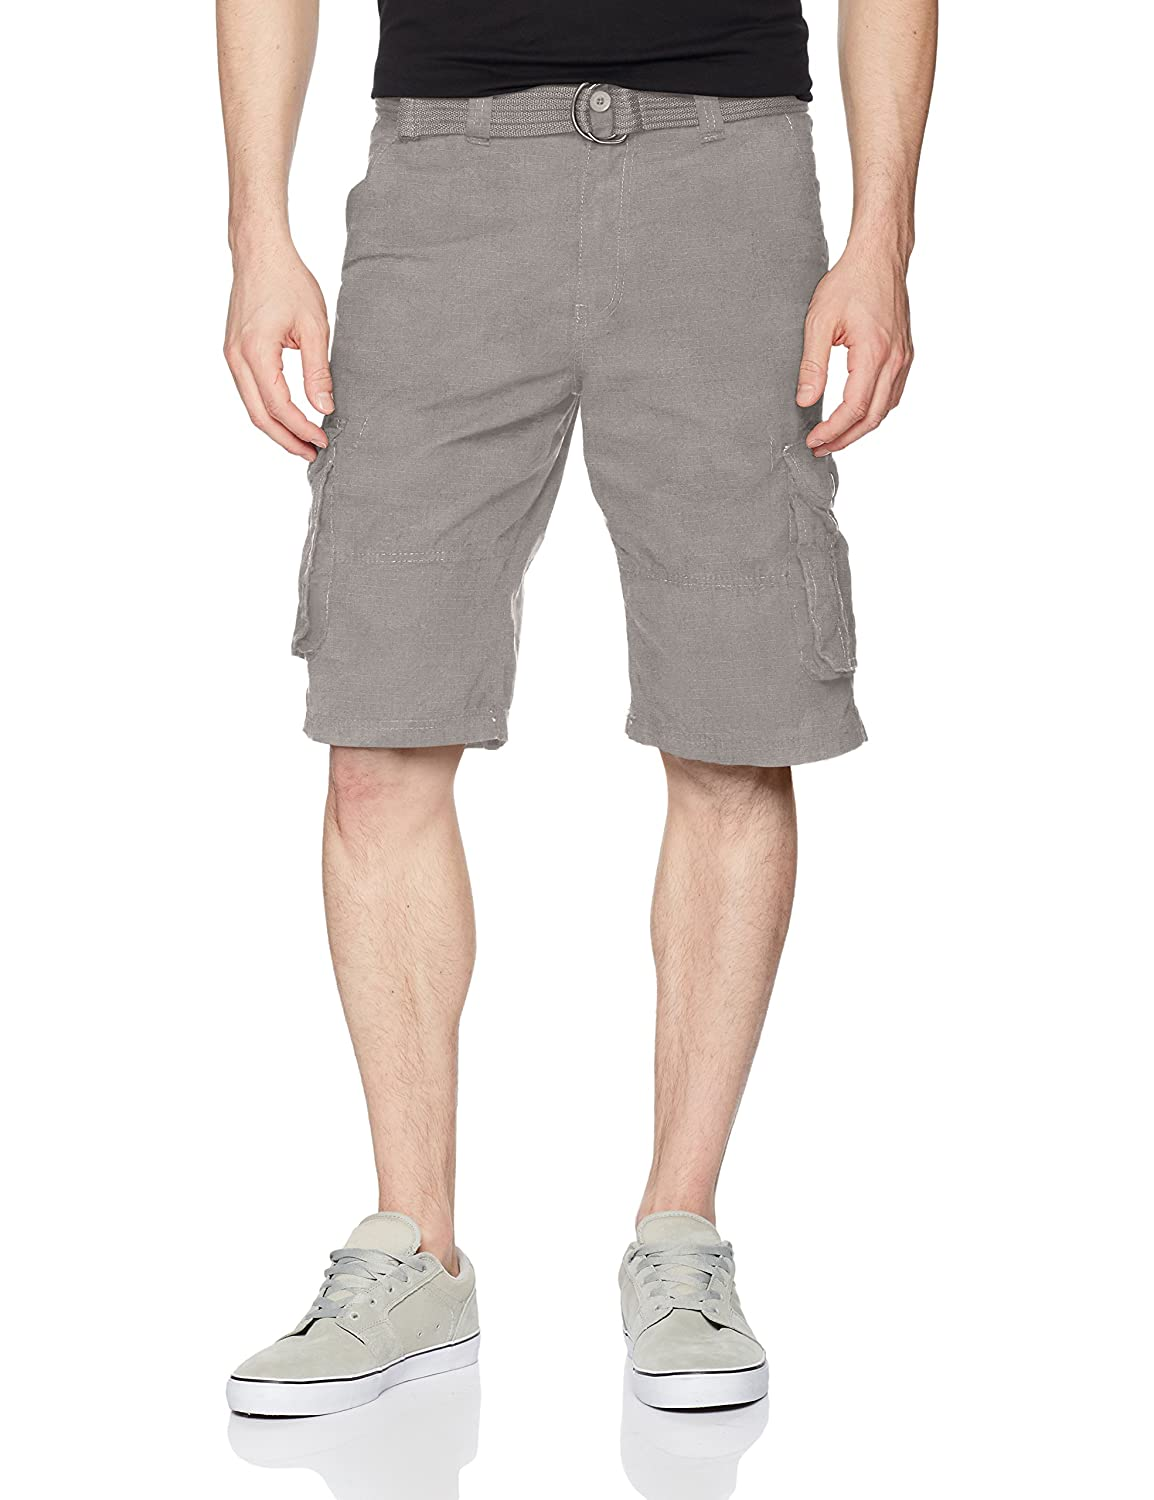 Southpole Men's Belted Ripstop Basic Cargo Short with Washing All Season 9001-3341